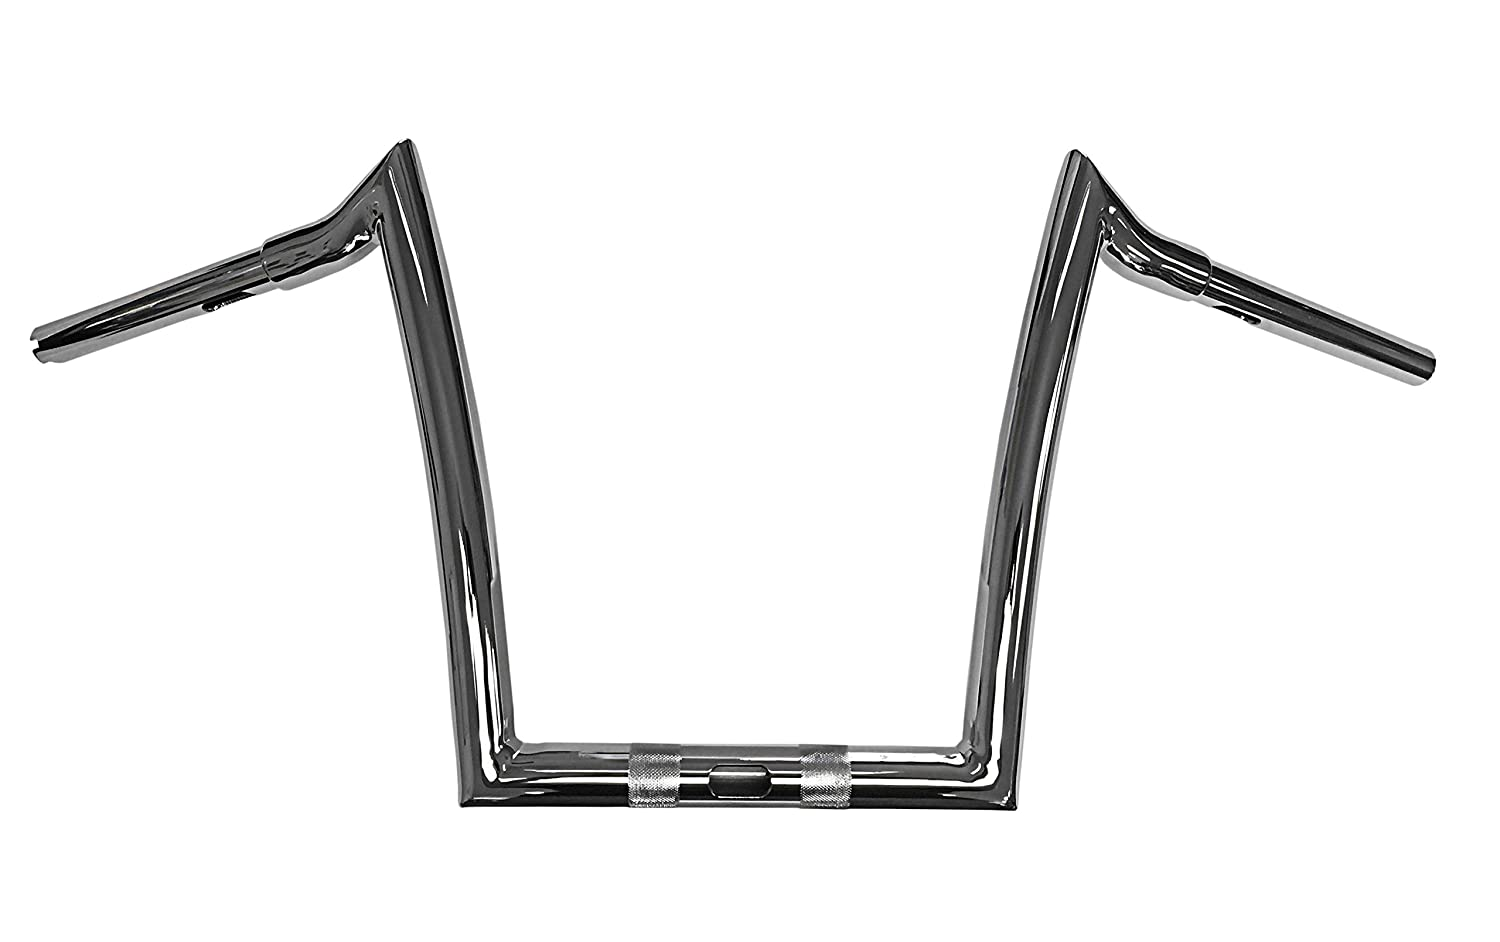 Dominator Industries 1 1//4 Inch Road Glide Meathook Ape Hanger Handlebars Chrome for 2015-2019 Road Glides 10 Inch Rise